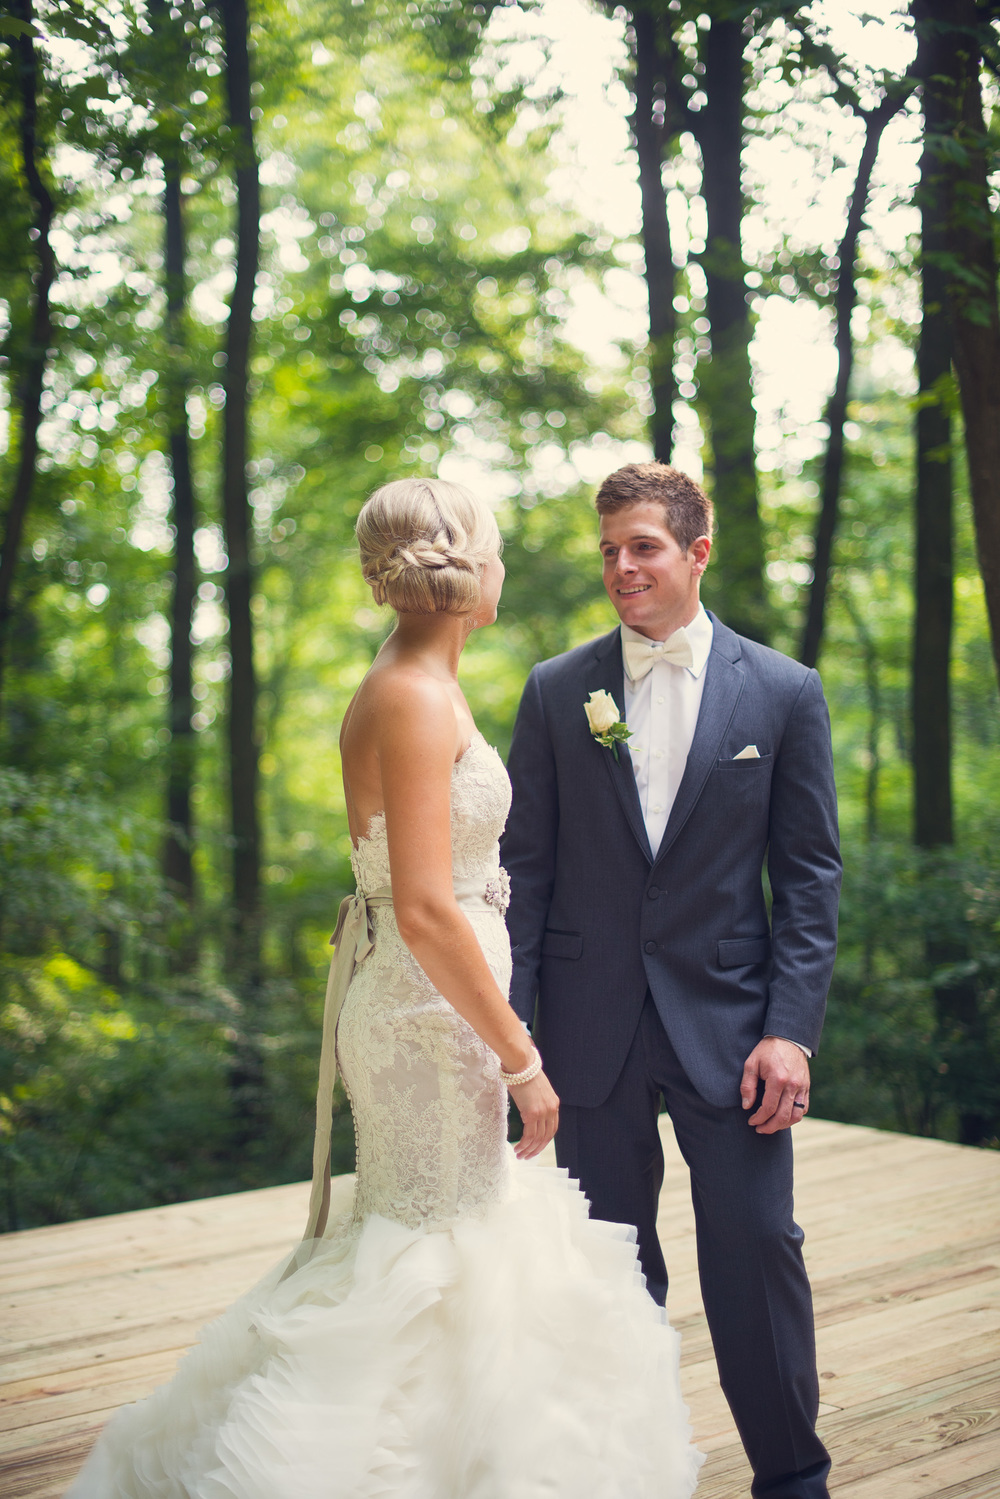 classis bride groom suit forest background